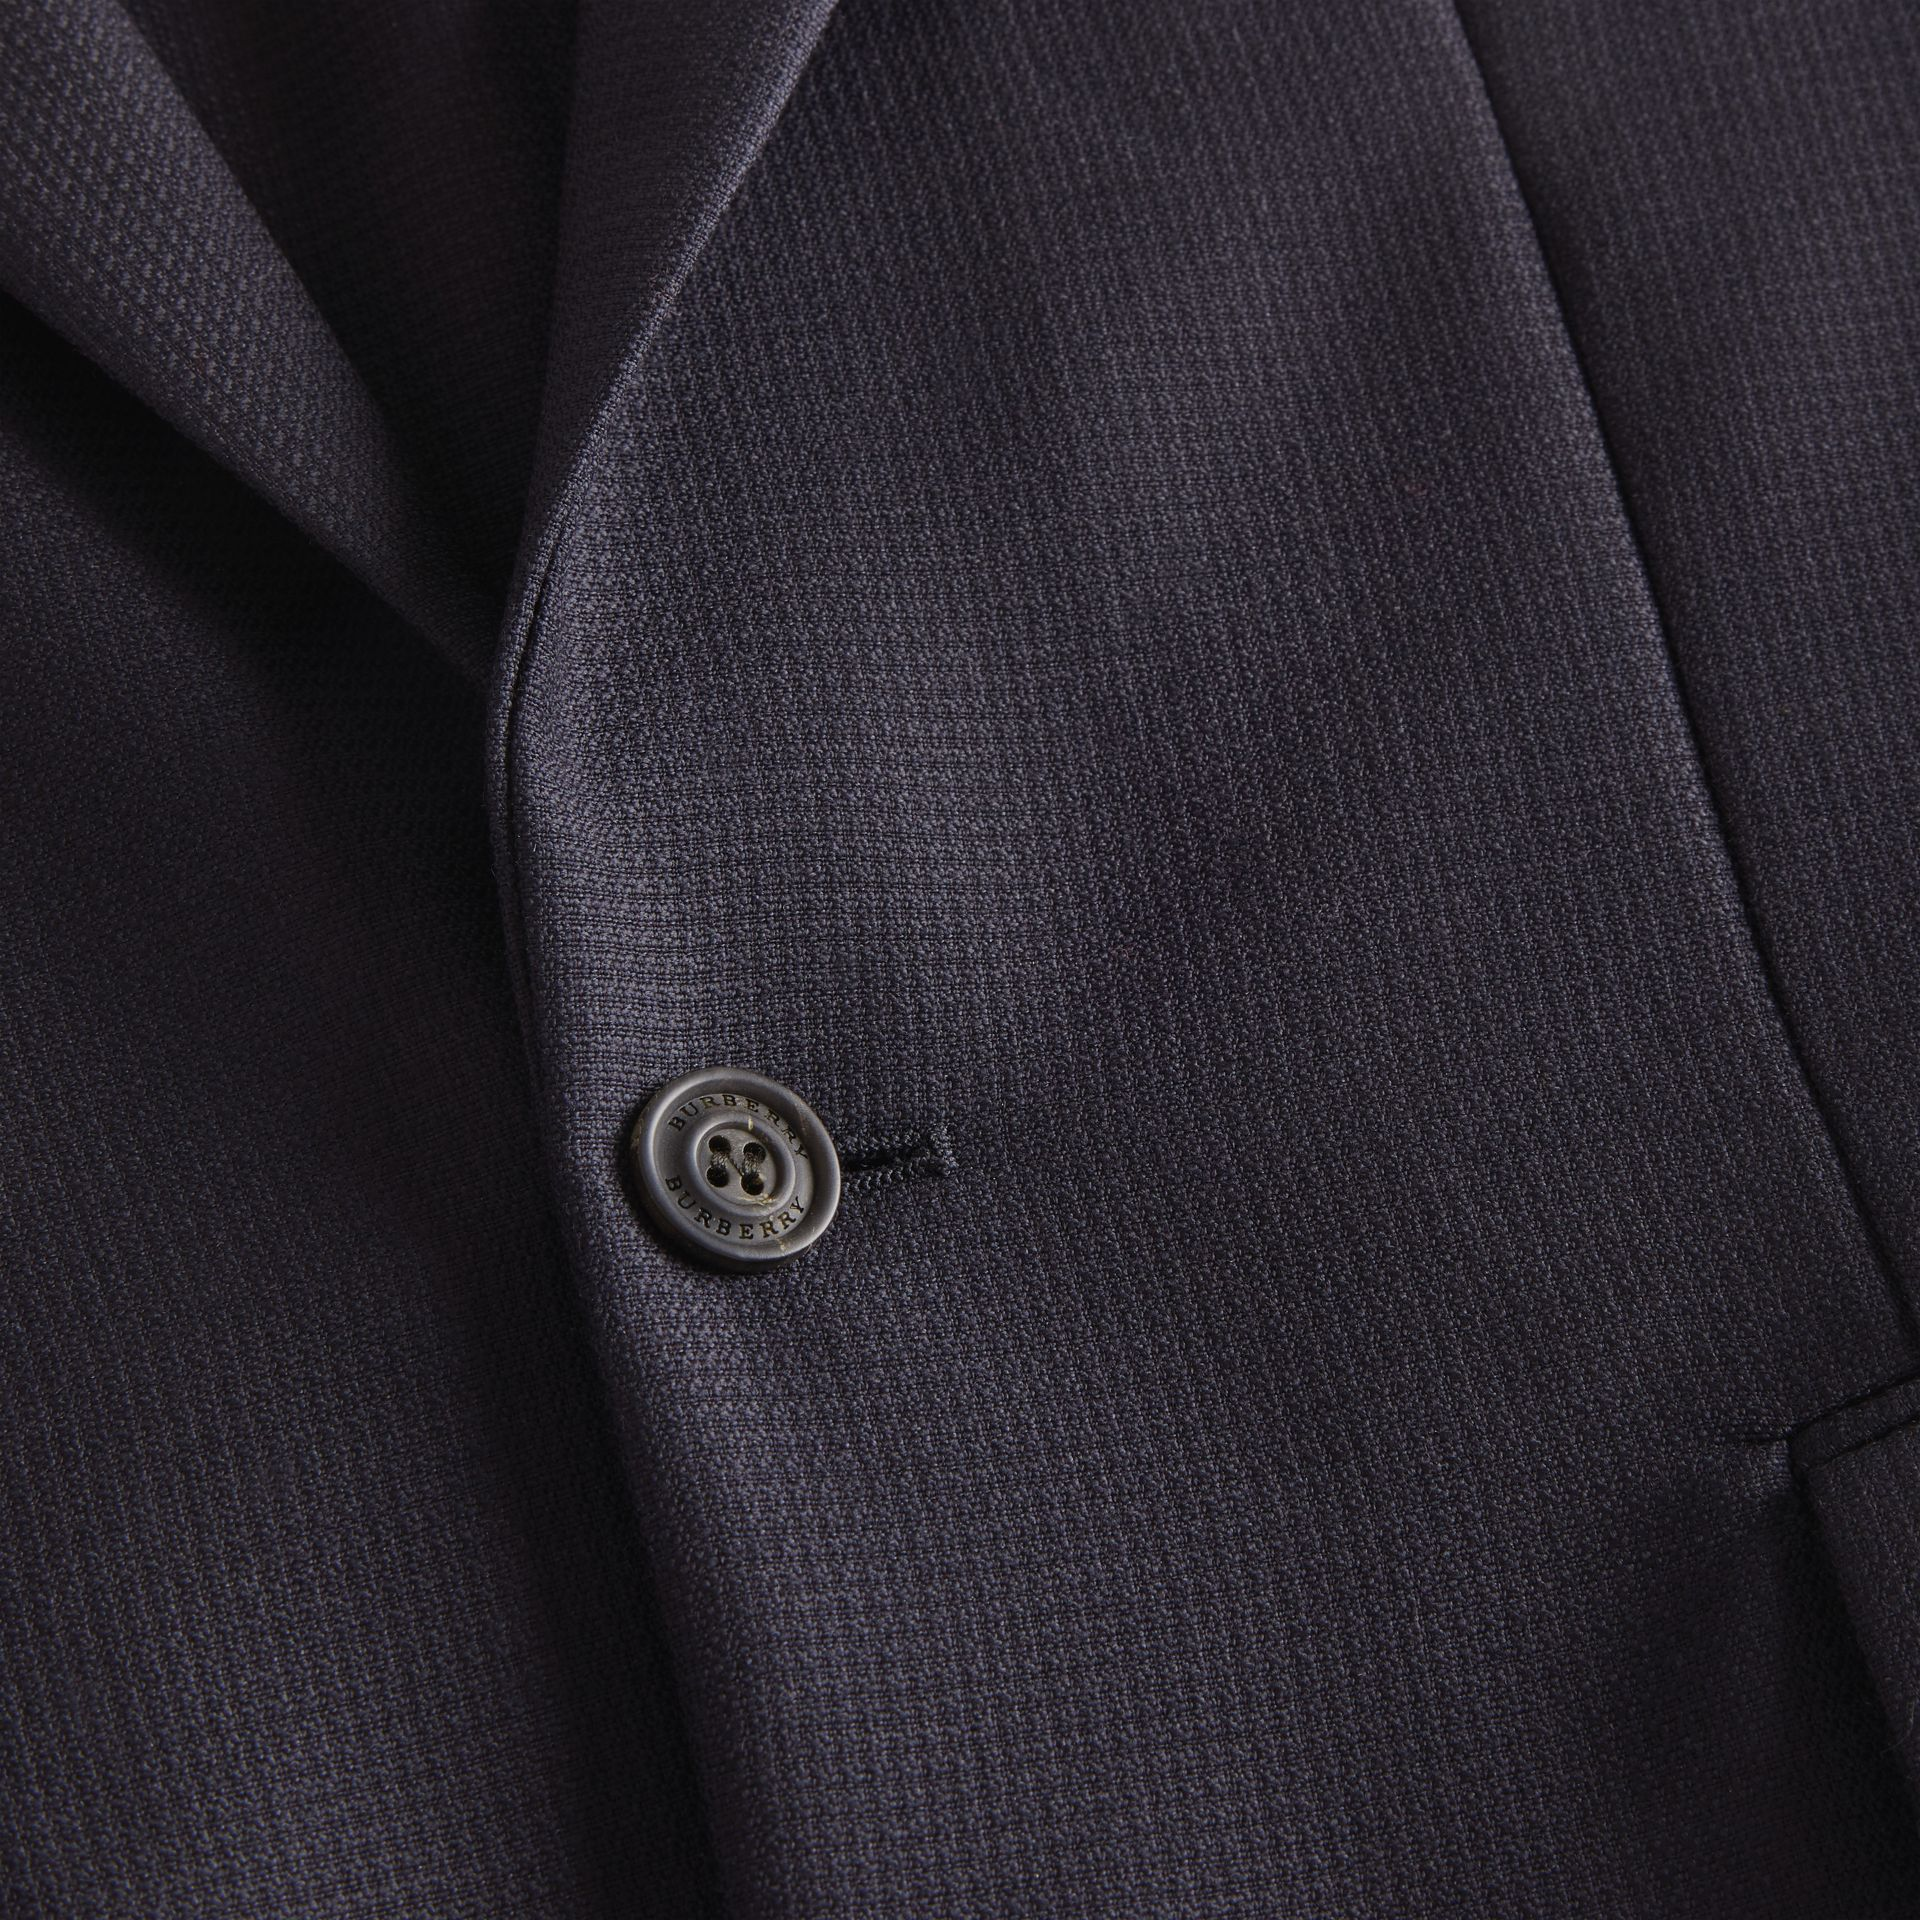 Wool Mohair Tailored Jacket in Midnight - Men | Burberry - gallery image 2